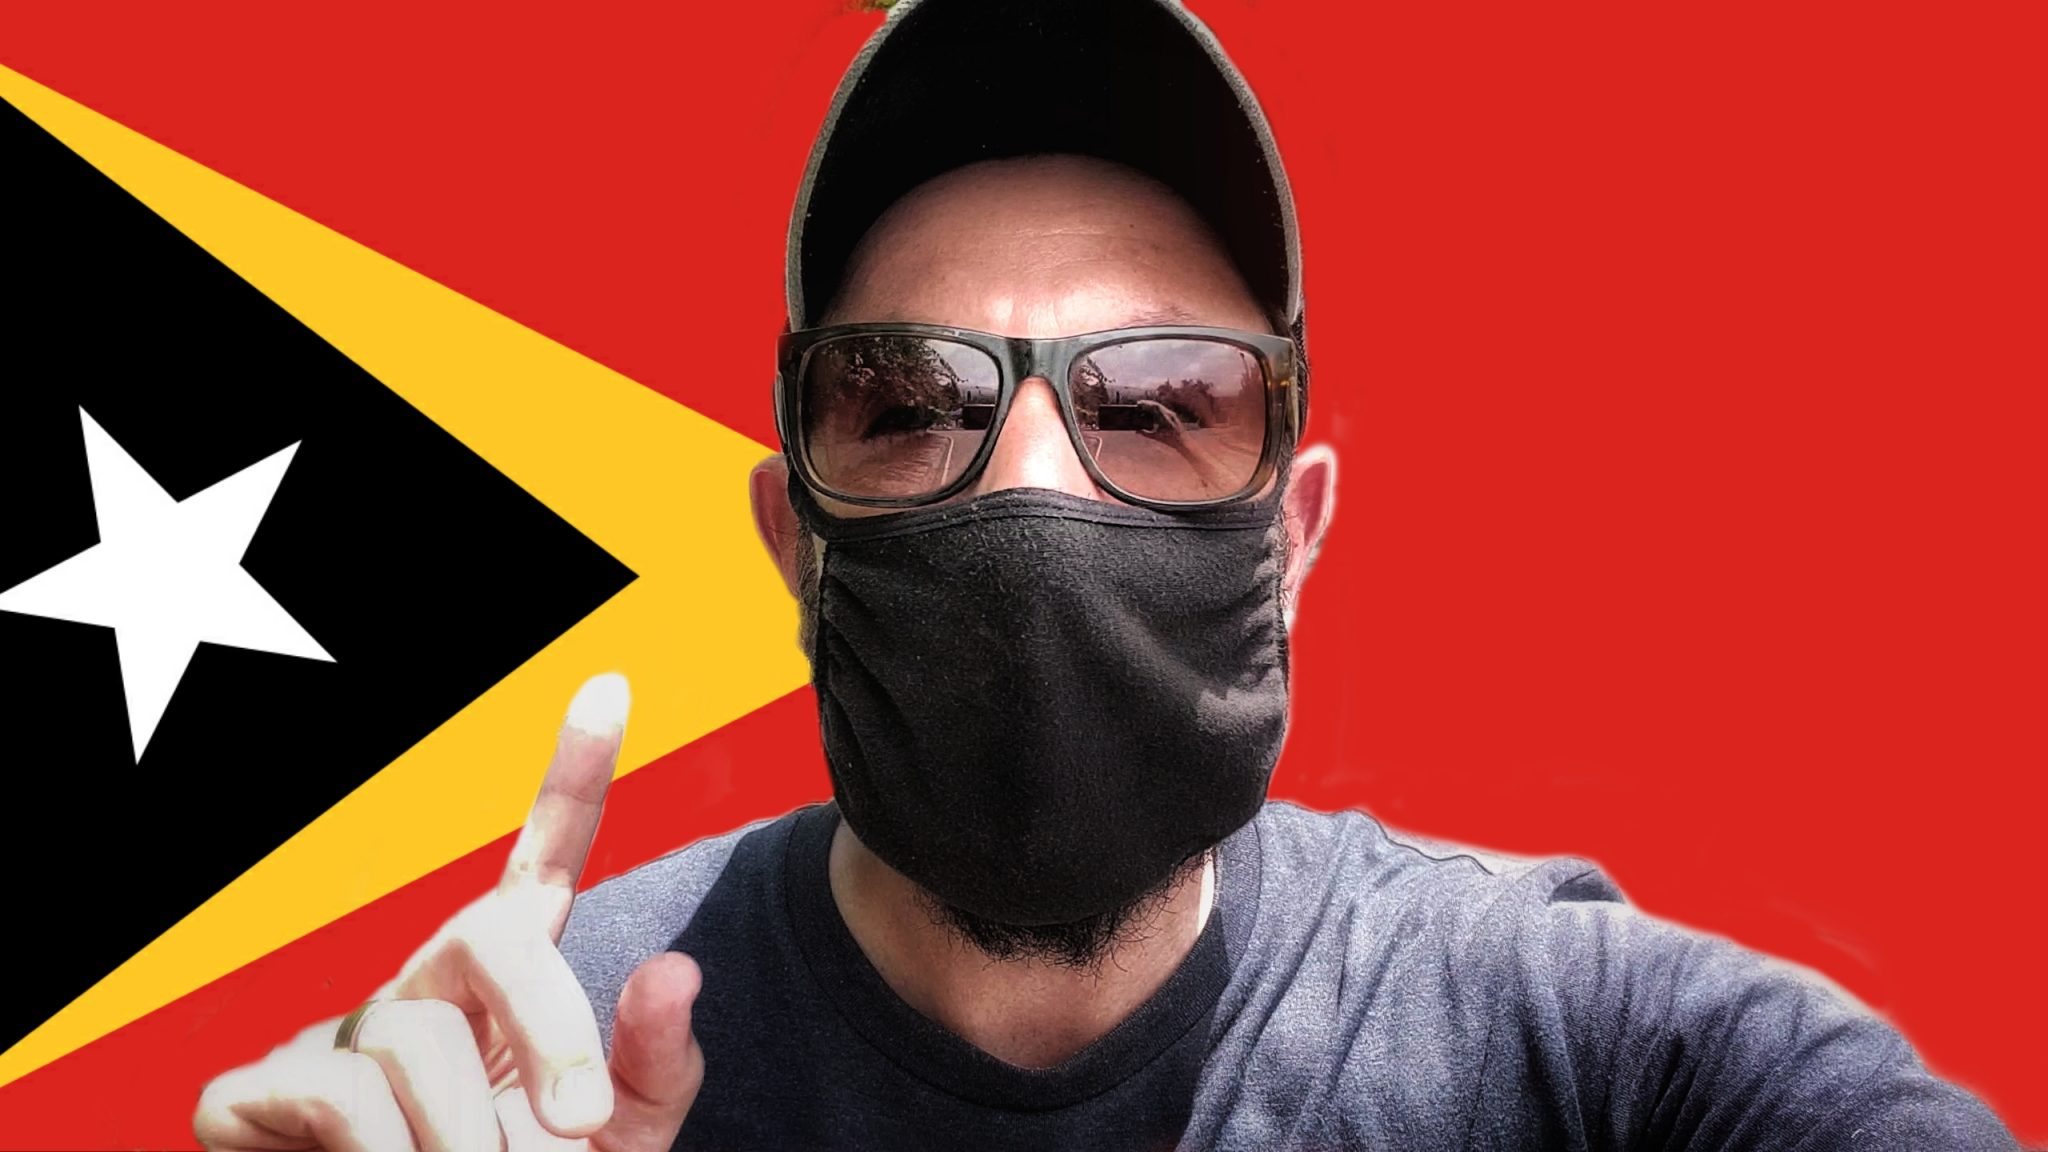 A Day In The Life Of An Expat And Content Creator In Timor Leste